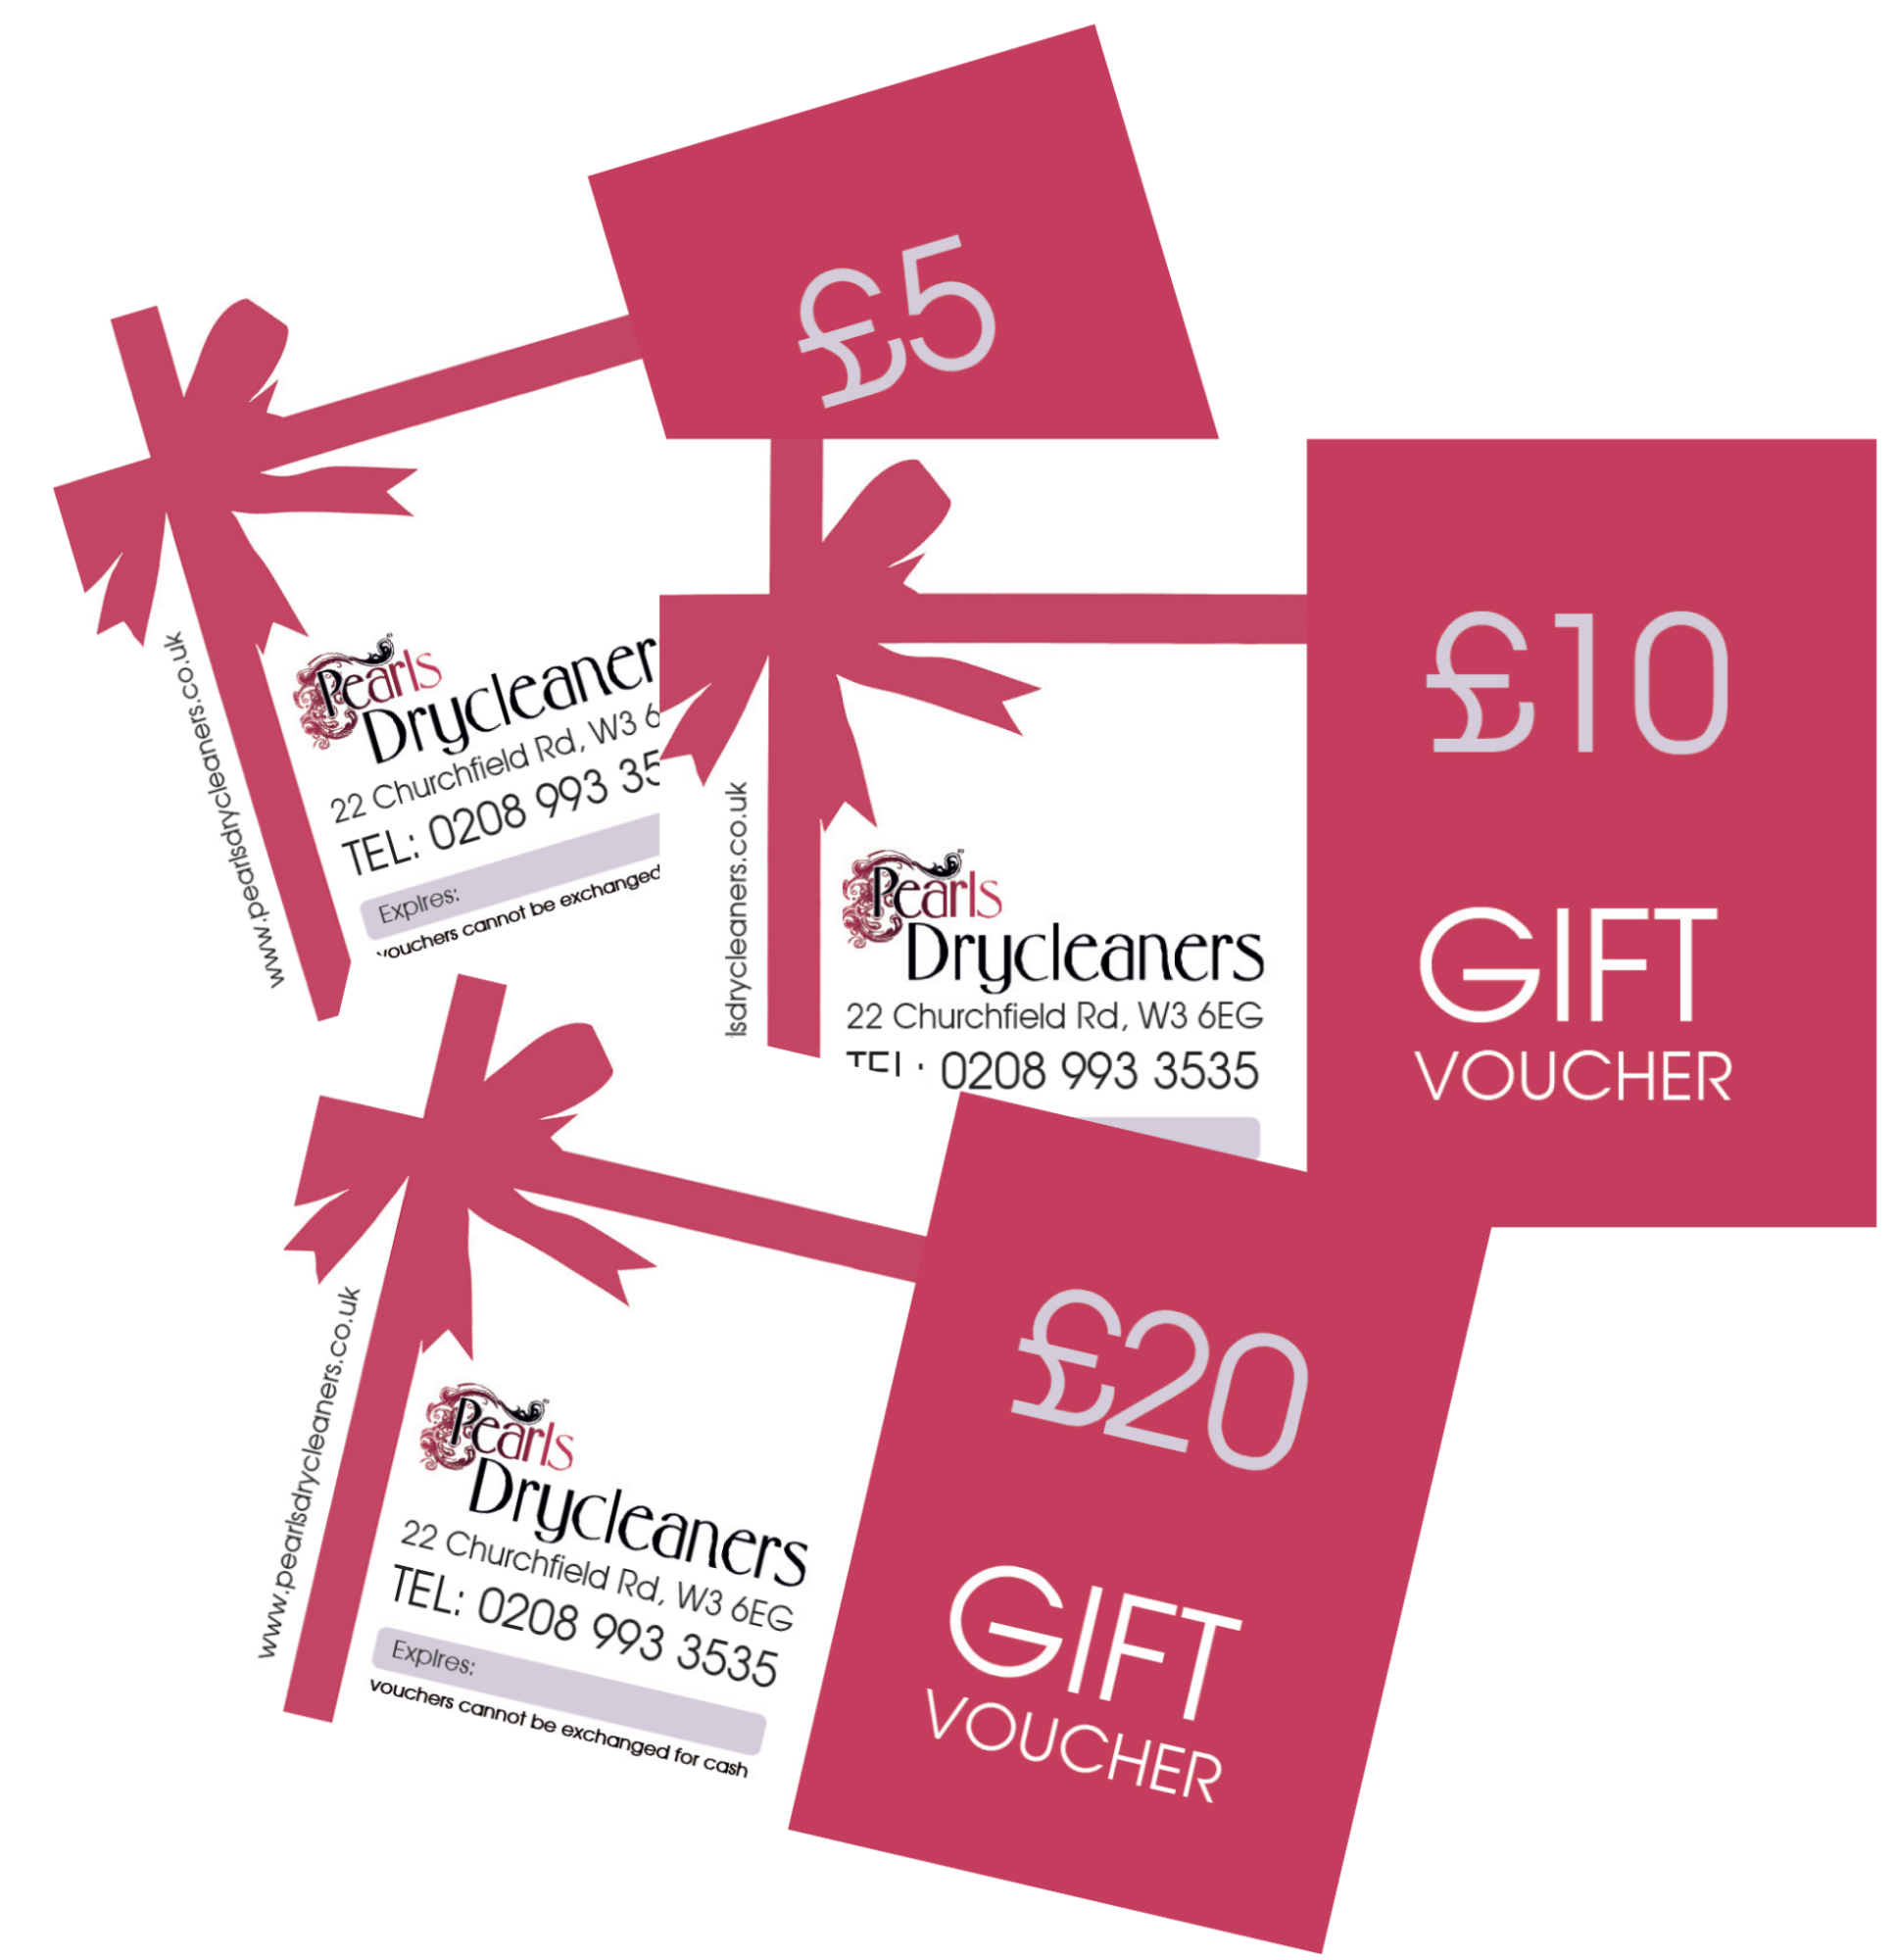 Drycleaning Vouchers